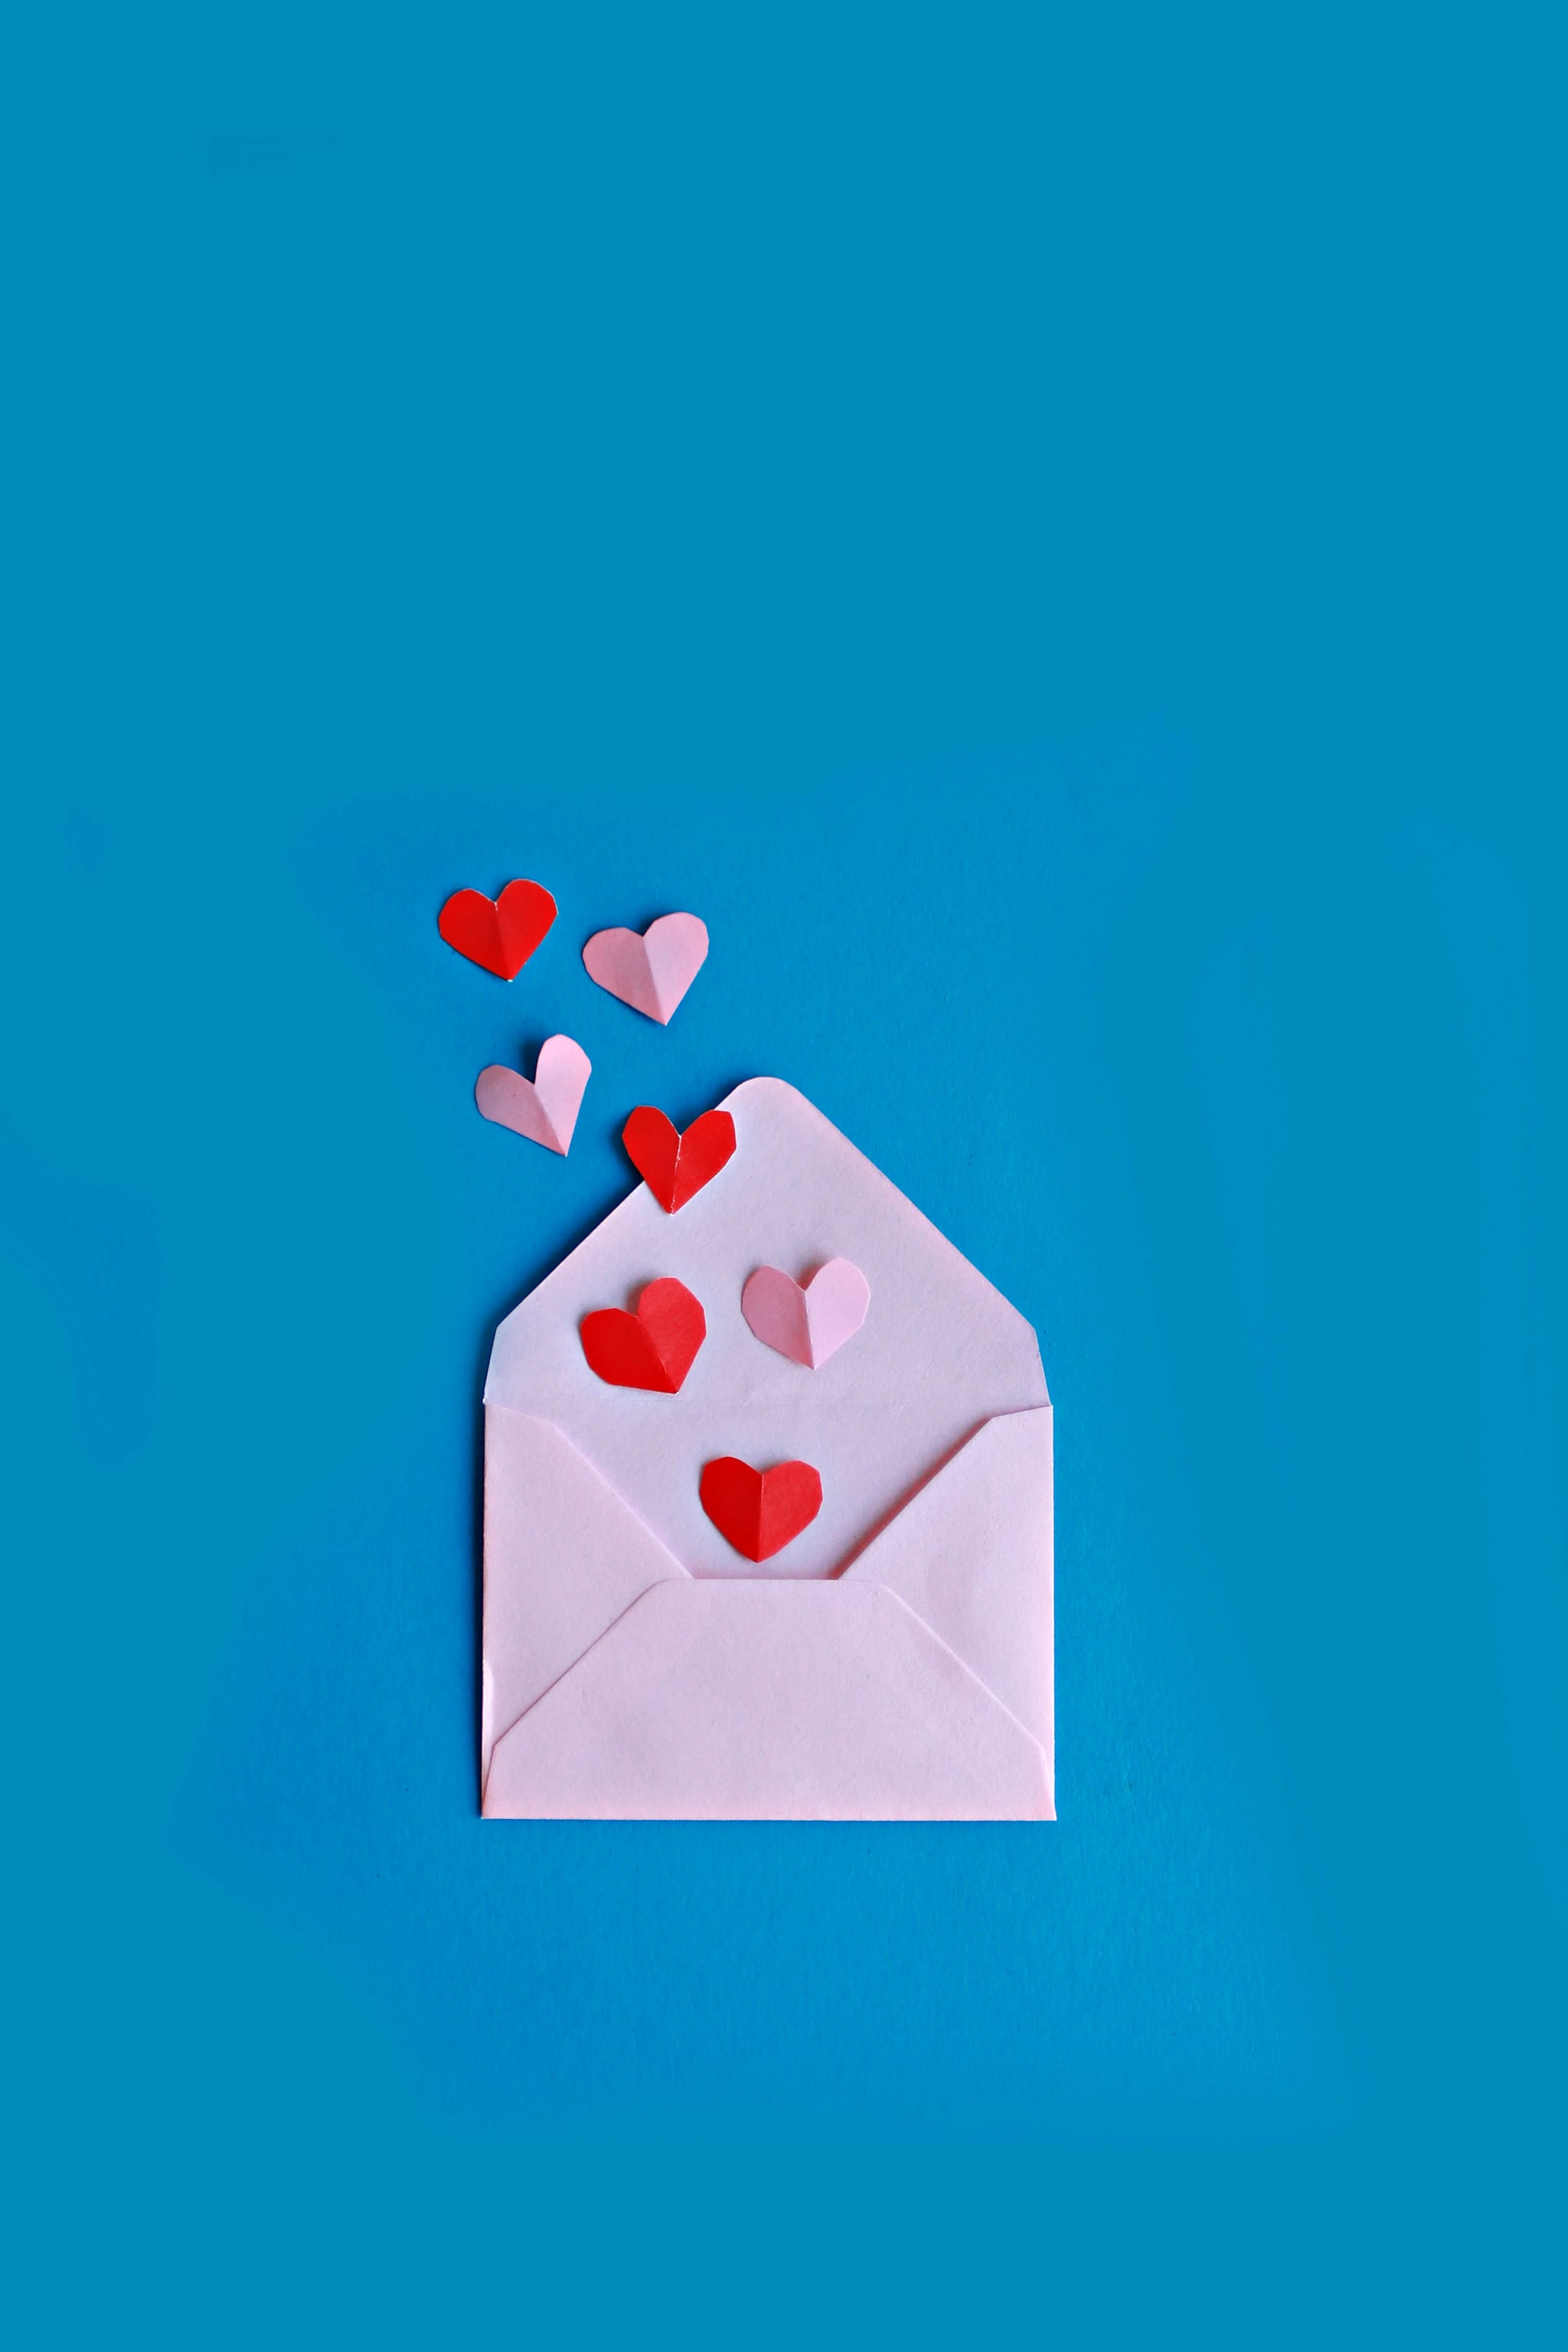 The Cutest Valentine S Day Wallpapers For Your Phone Popsugar Australia Tech